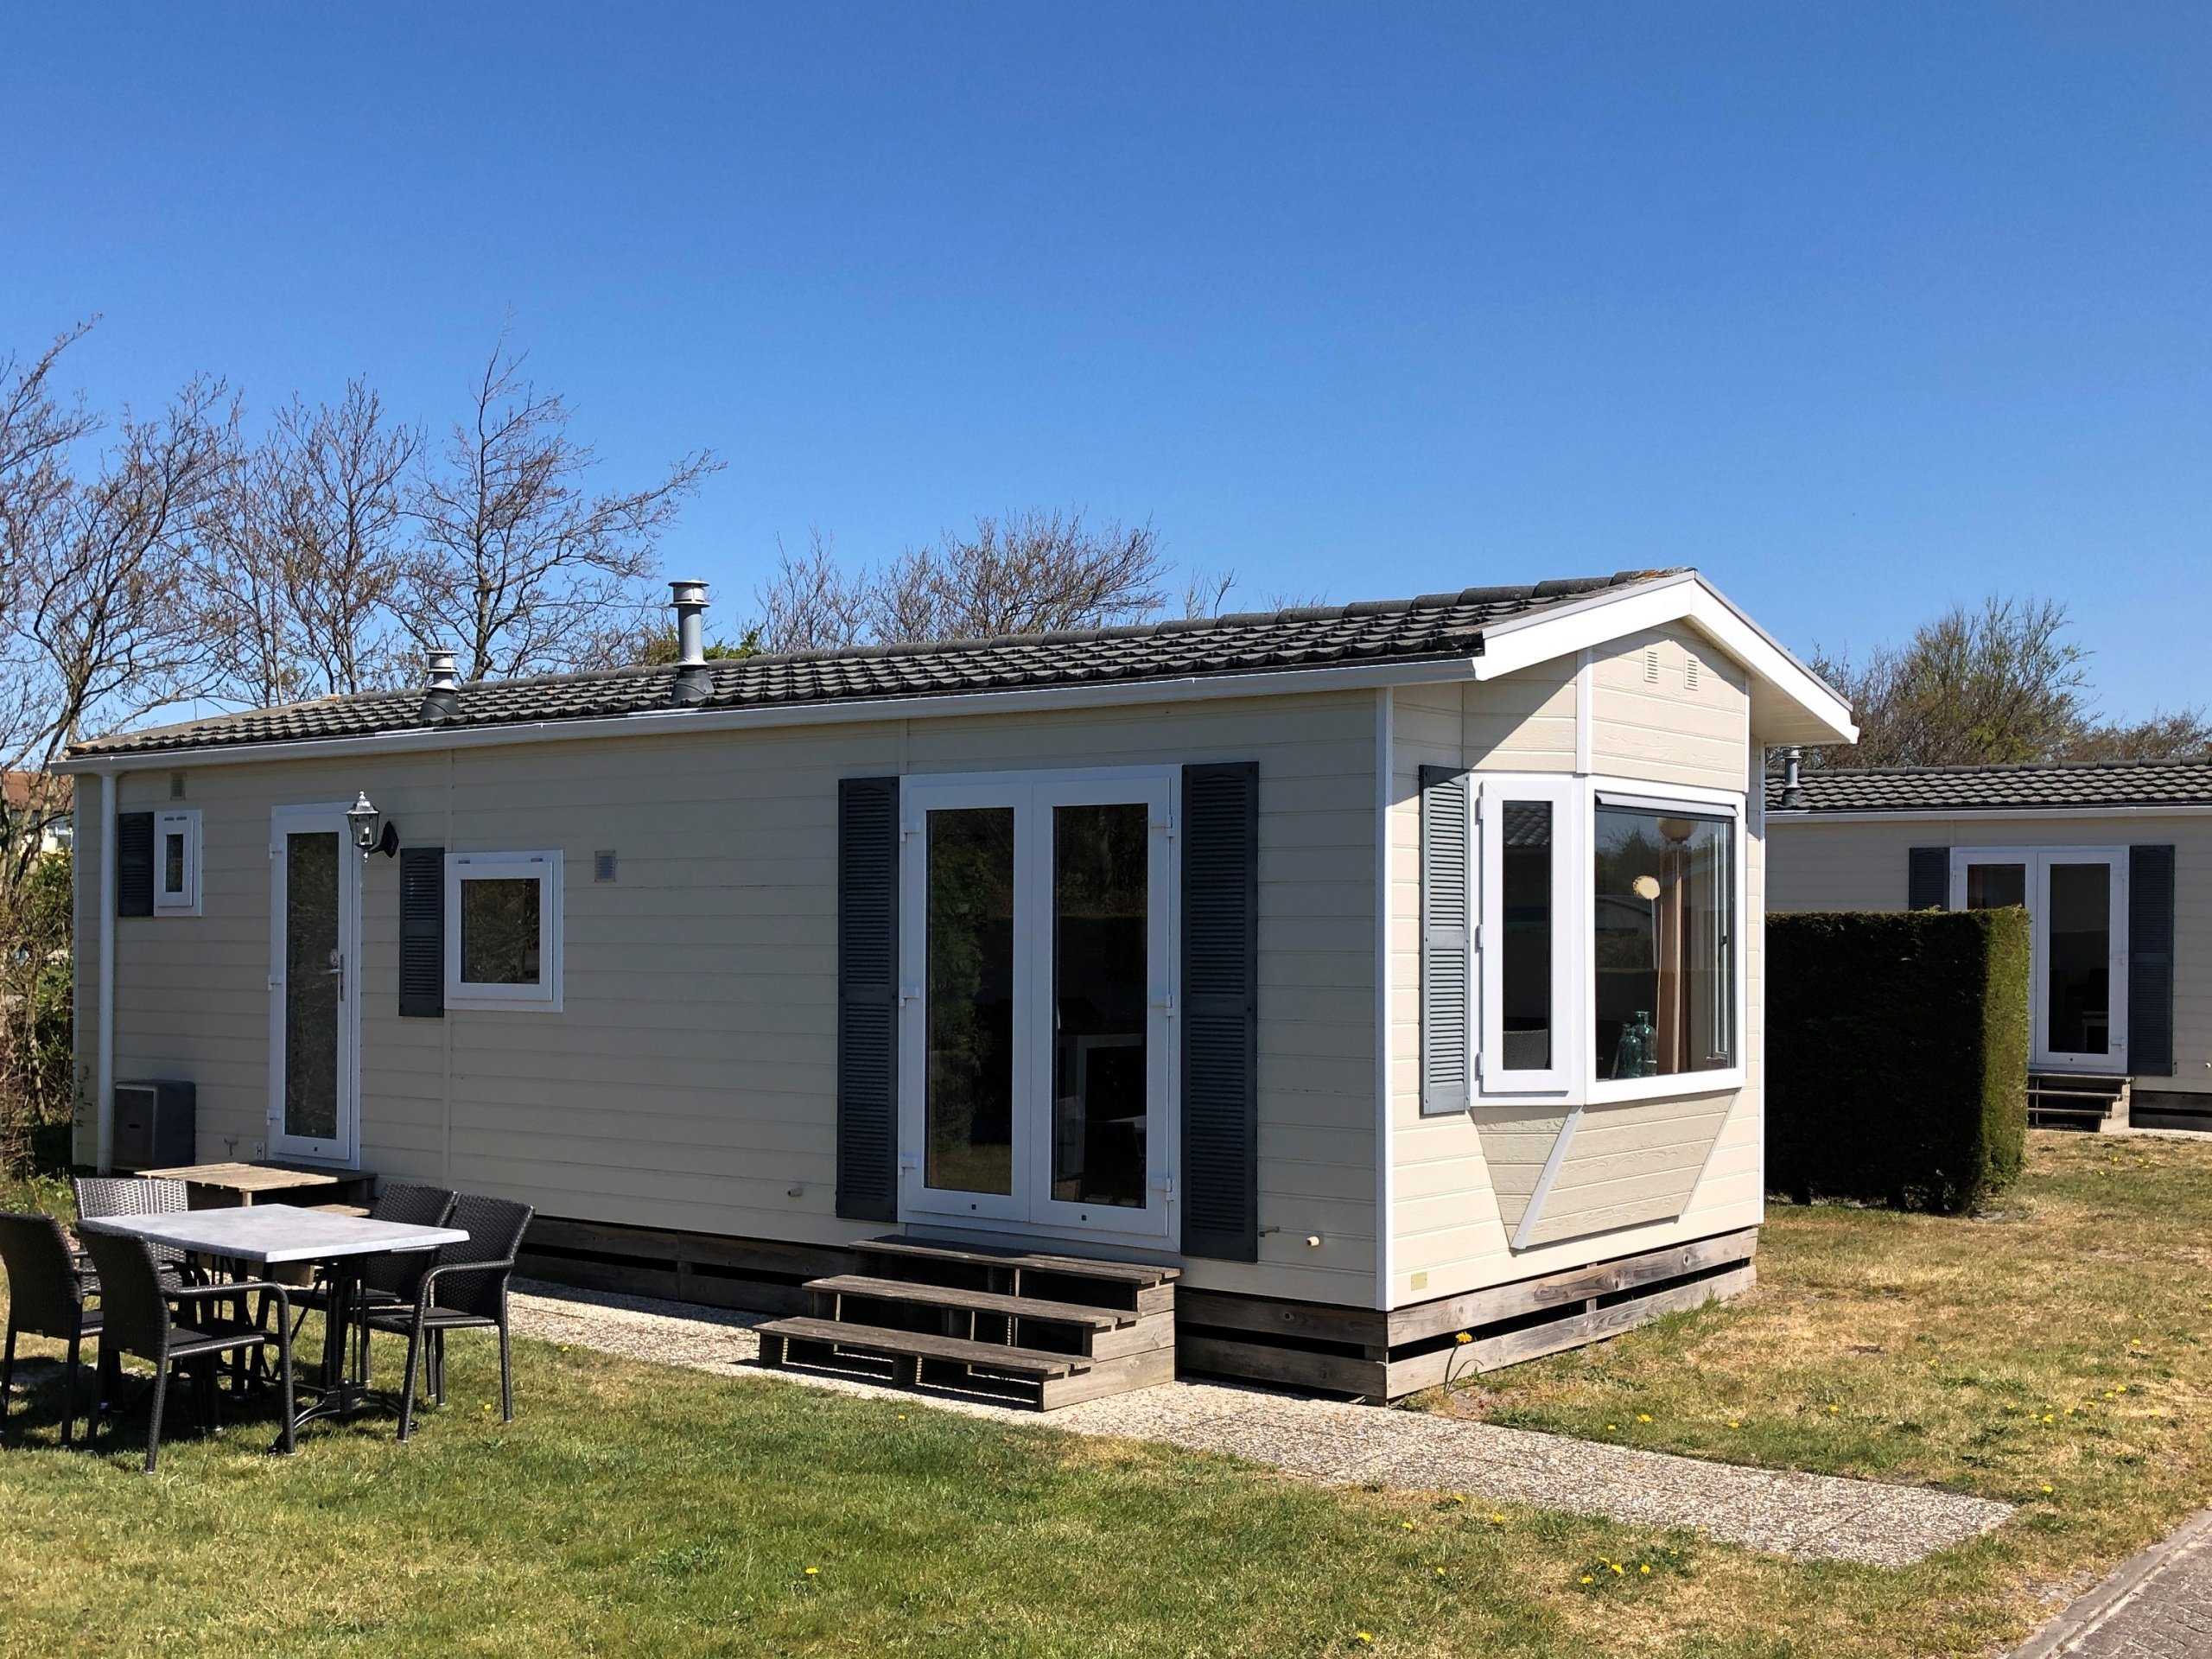 Comfortable chalet with lovely garden on a nice campsite in De Koog.